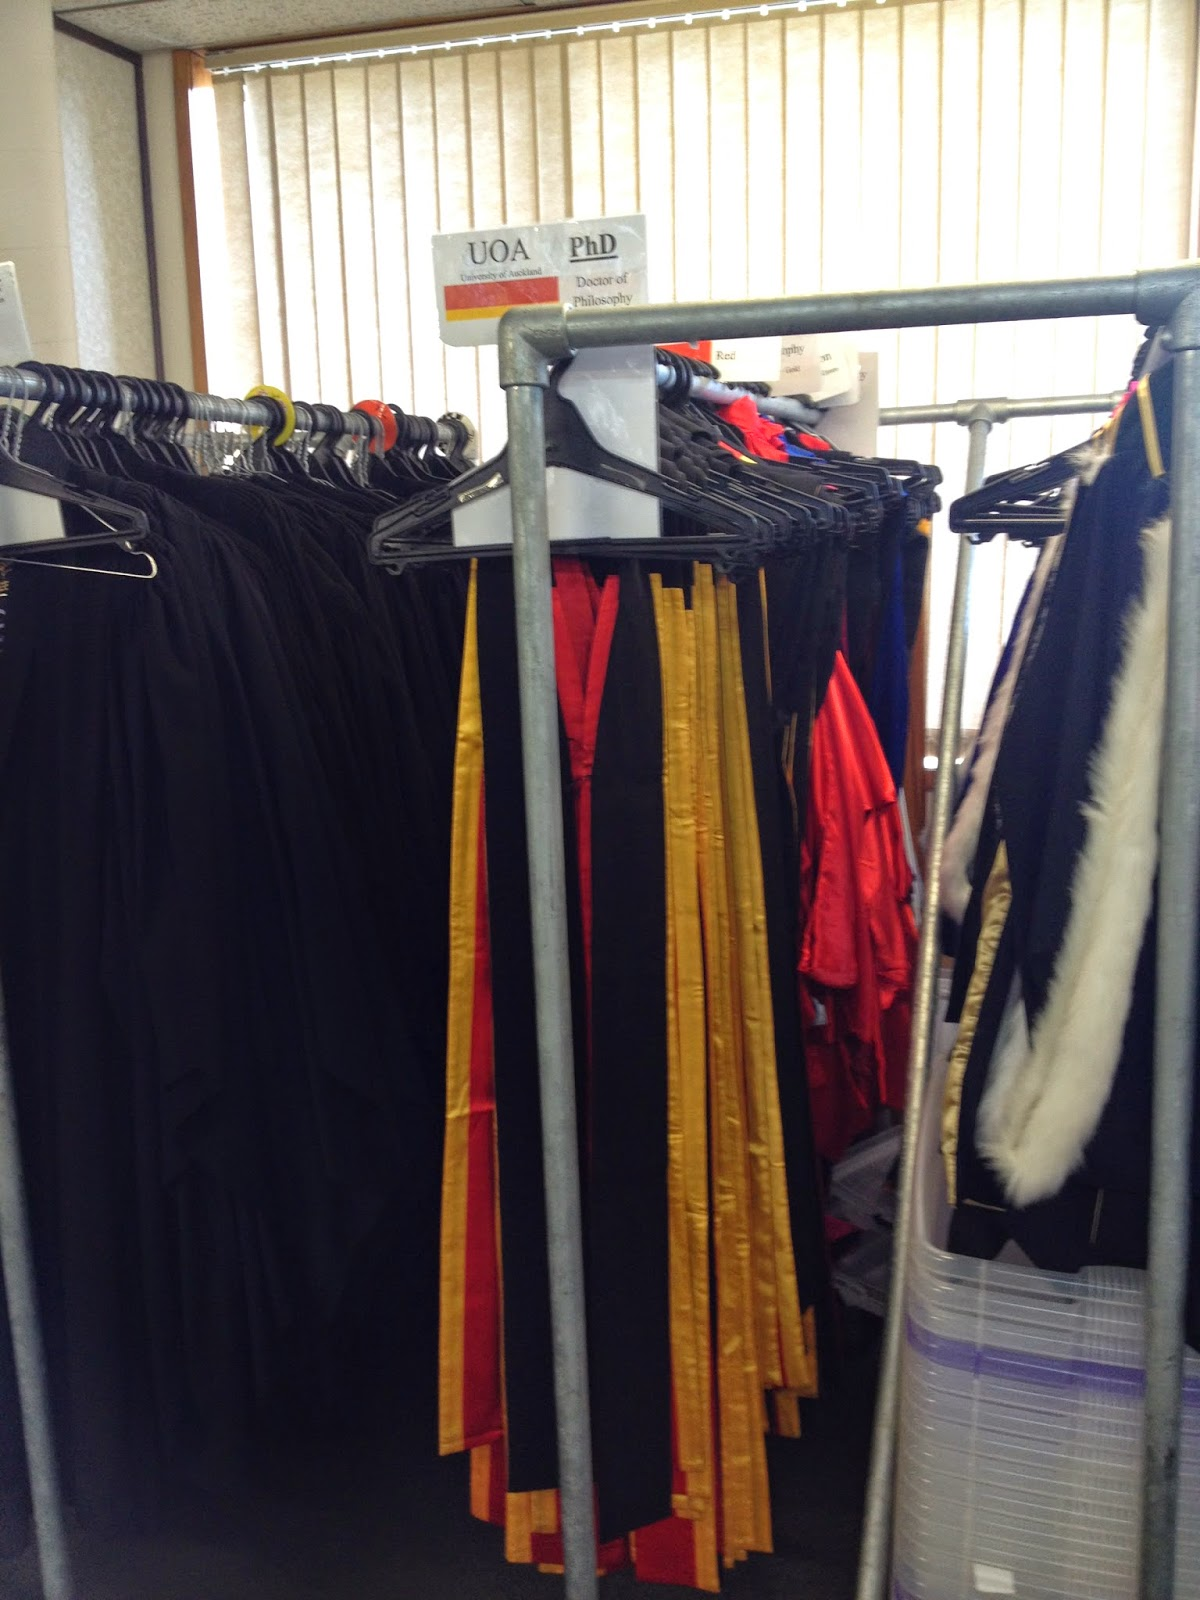 Here are PhD gowns and hoods. I have no interest in taking a PhD. A ...